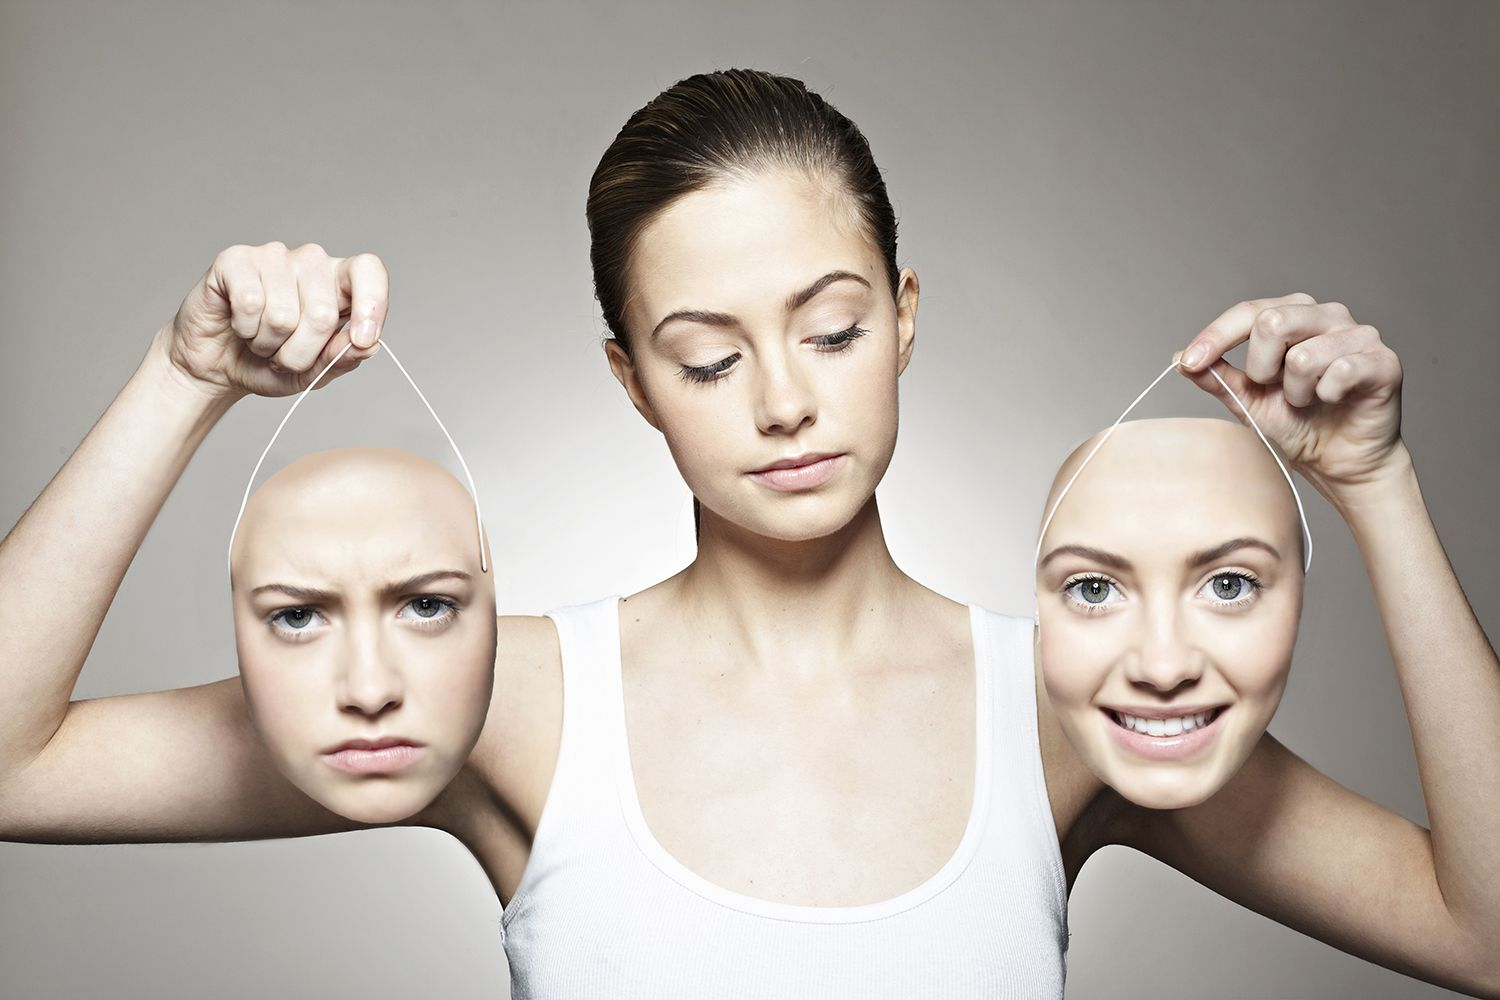 Young woman holding positive and negative emotive masks, looking toward the positive one